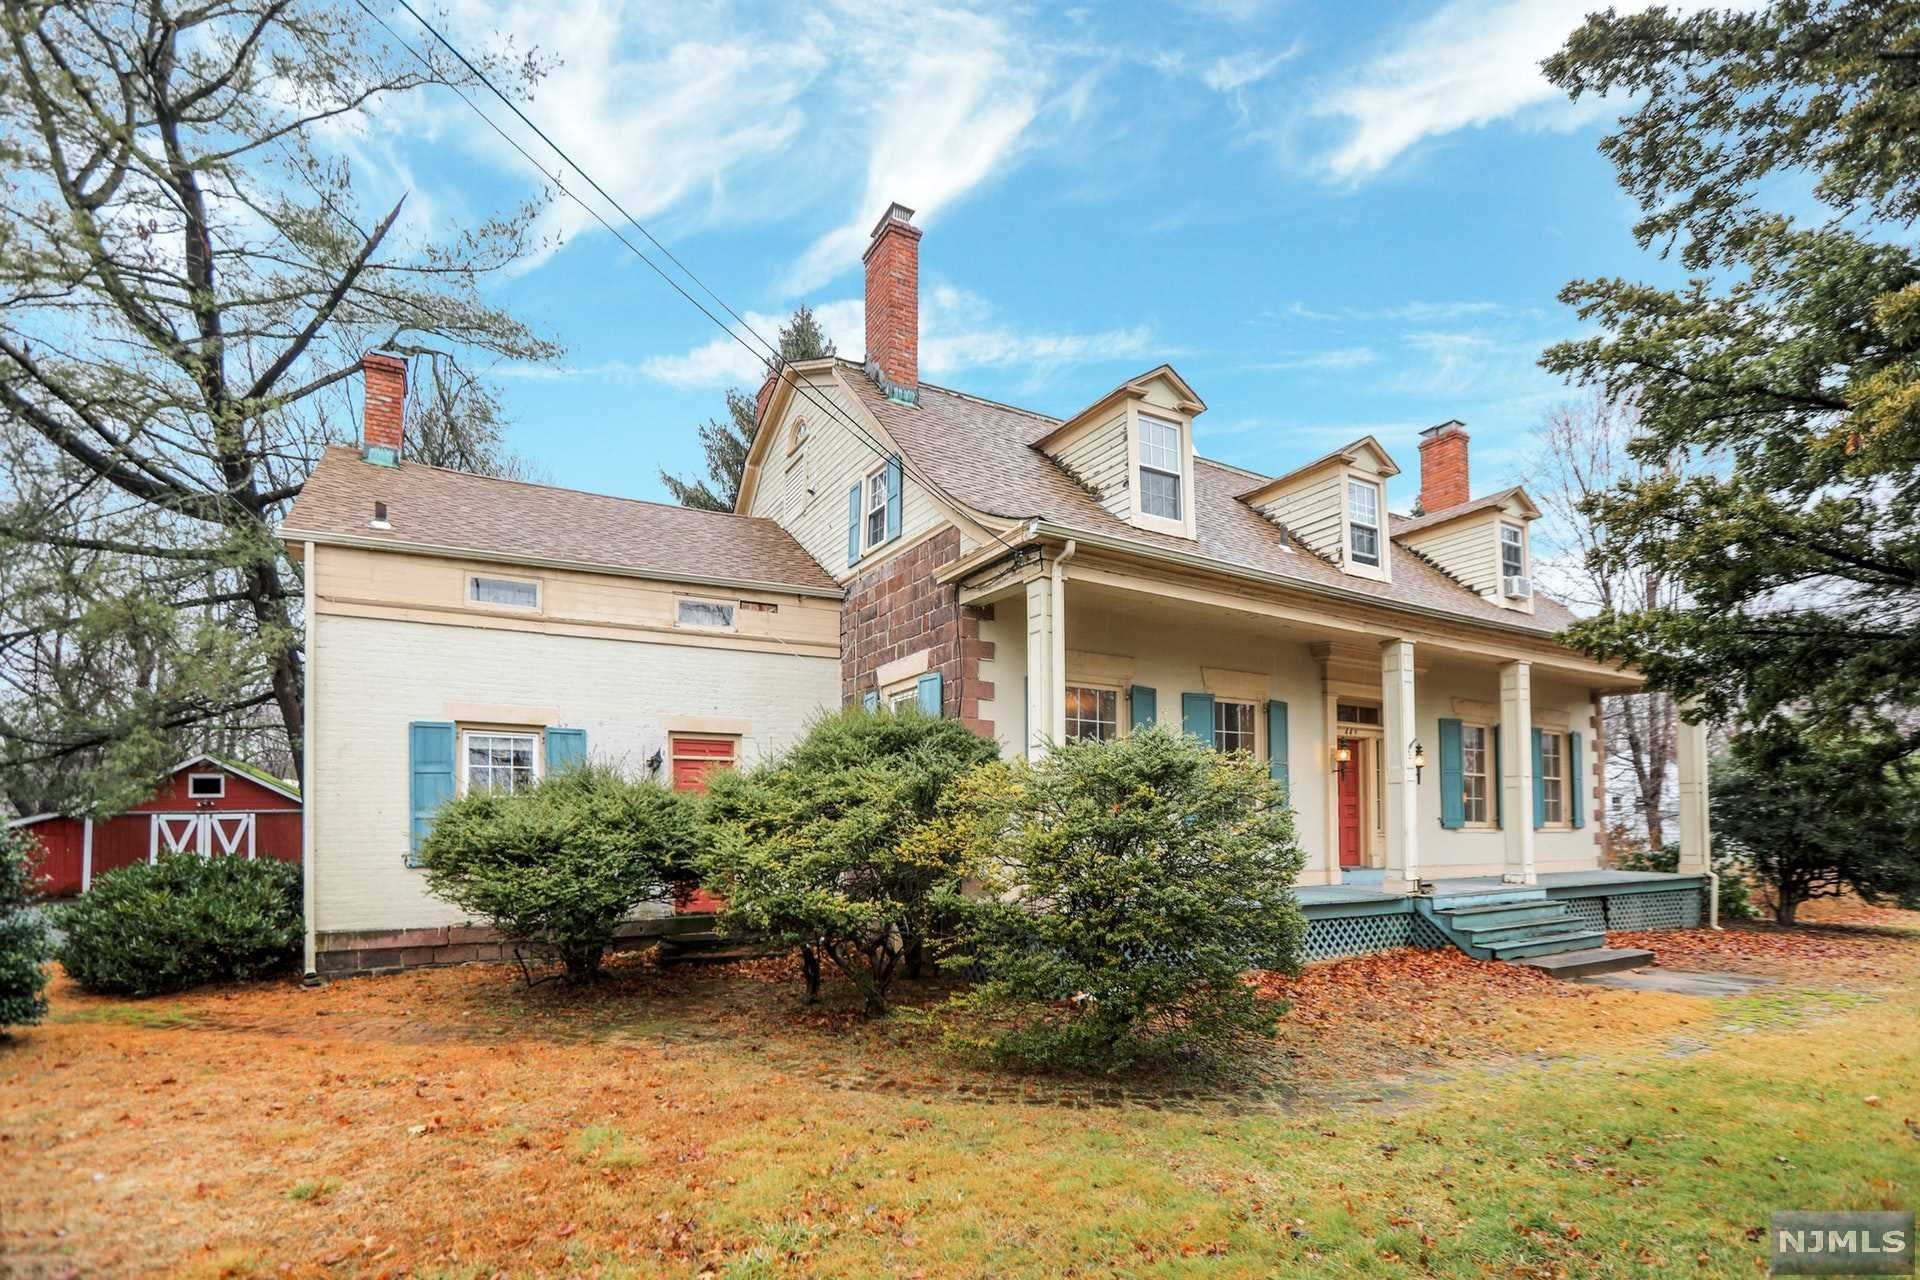 449 Paramus Road A Luxury Home For Sale In Paramus Bergen County New Jersey Property Id 20006219 Christie S International Real Estate